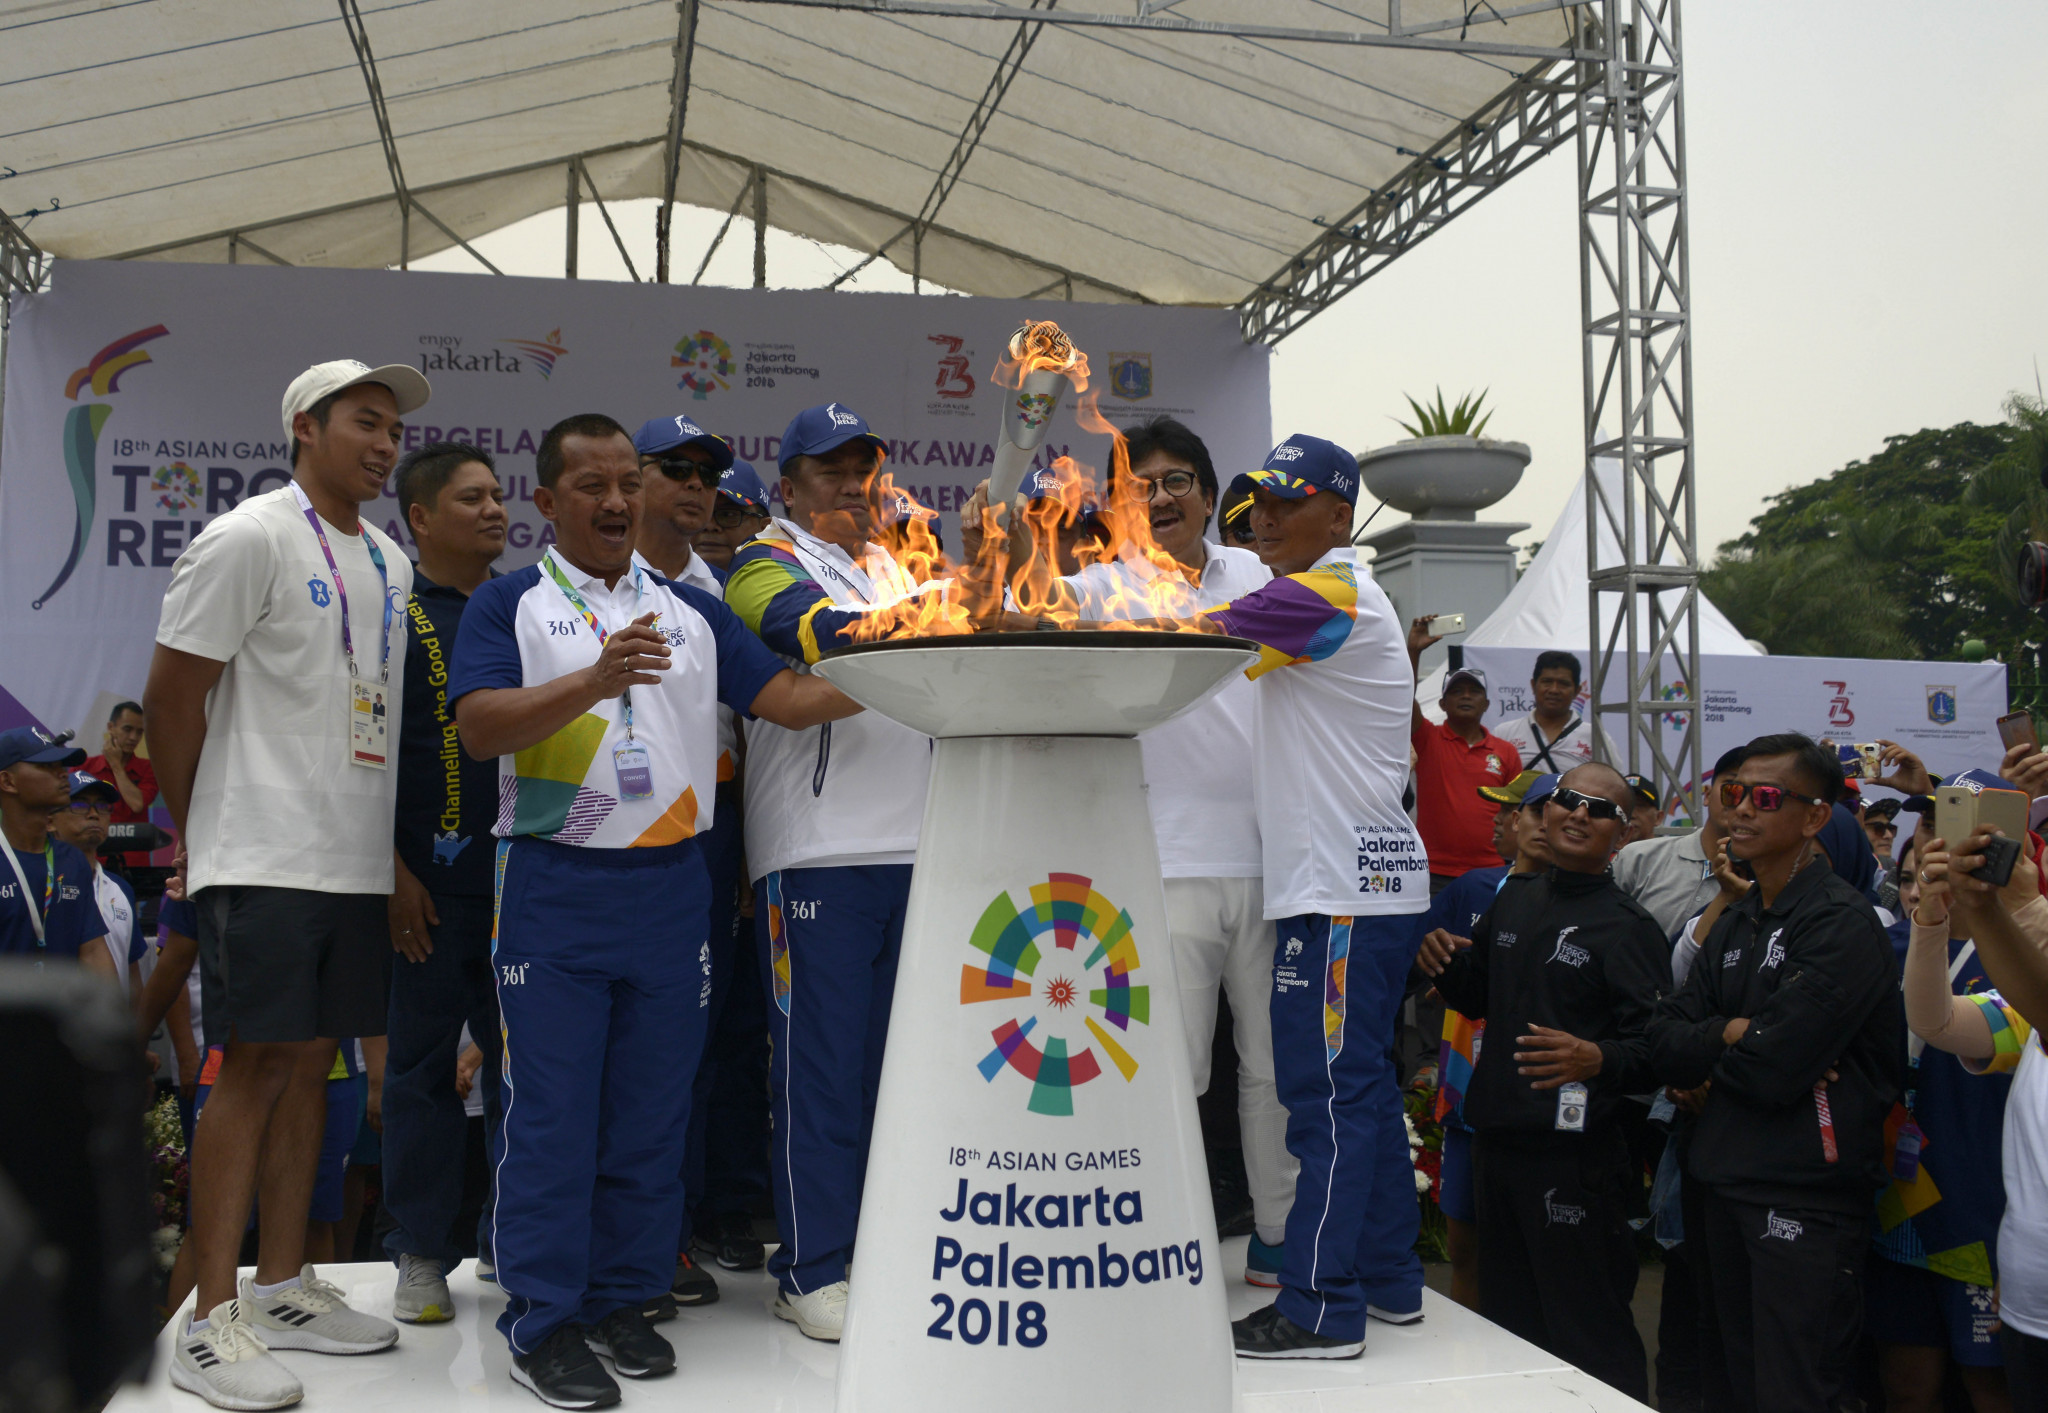 Asian Games Torch Relay arrives in Jakarta prior to Opening Ceremony